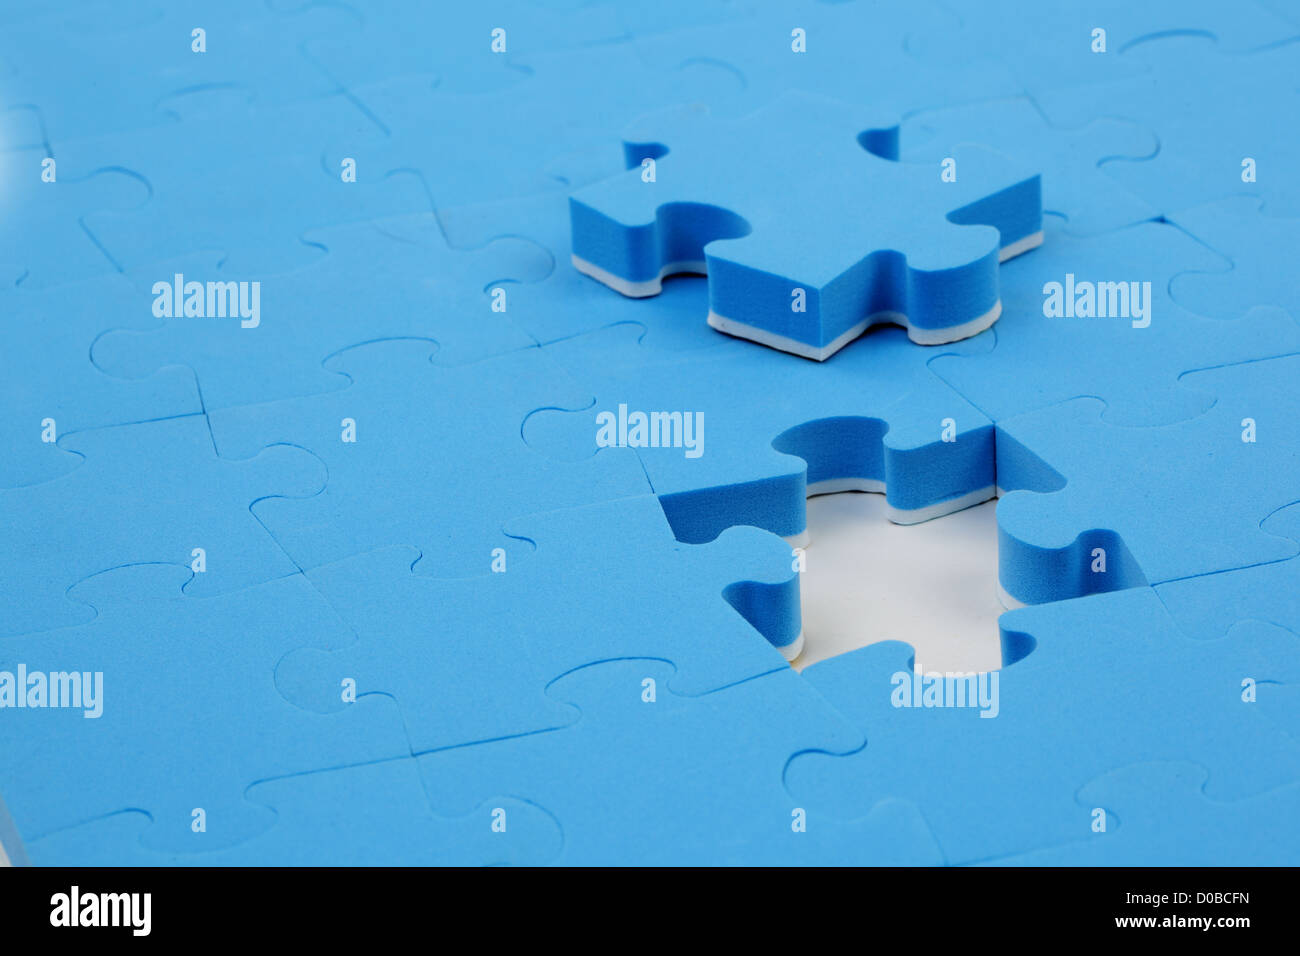 abstract puzzle background with one piece missing - Stock Image